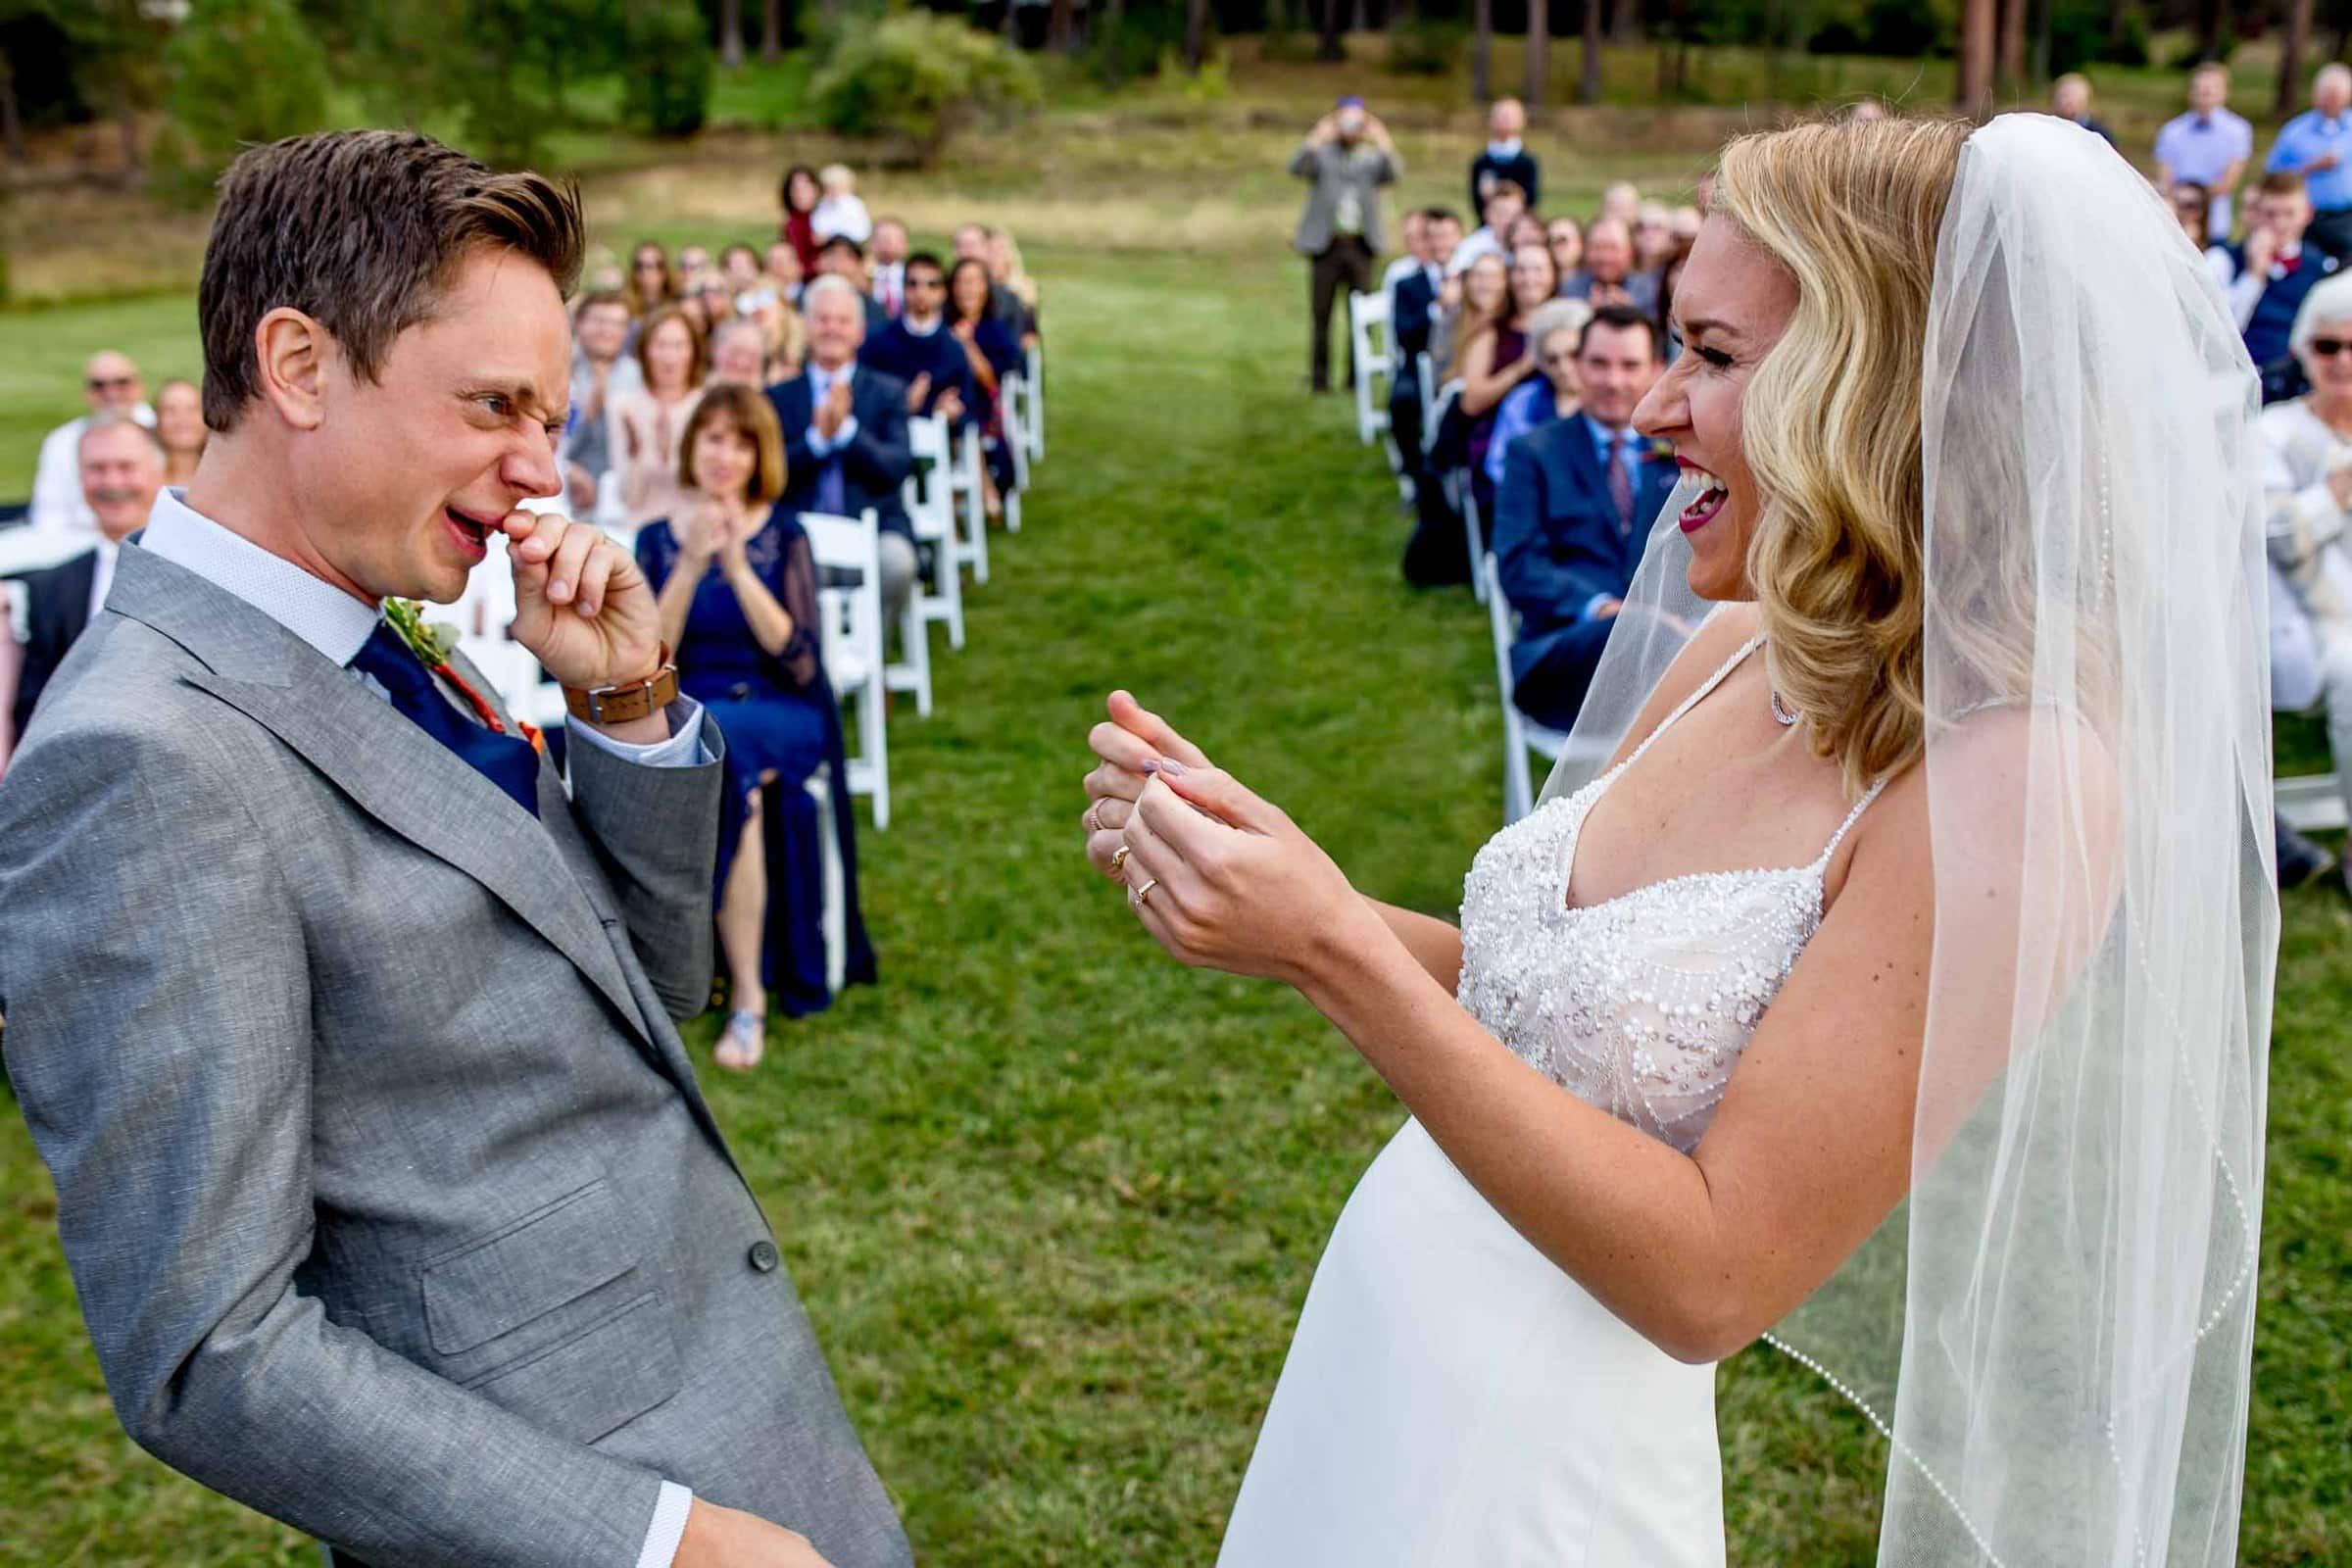 Funny moment between bride and groom after their kiss during their House on Metolius Wedding Ceremony